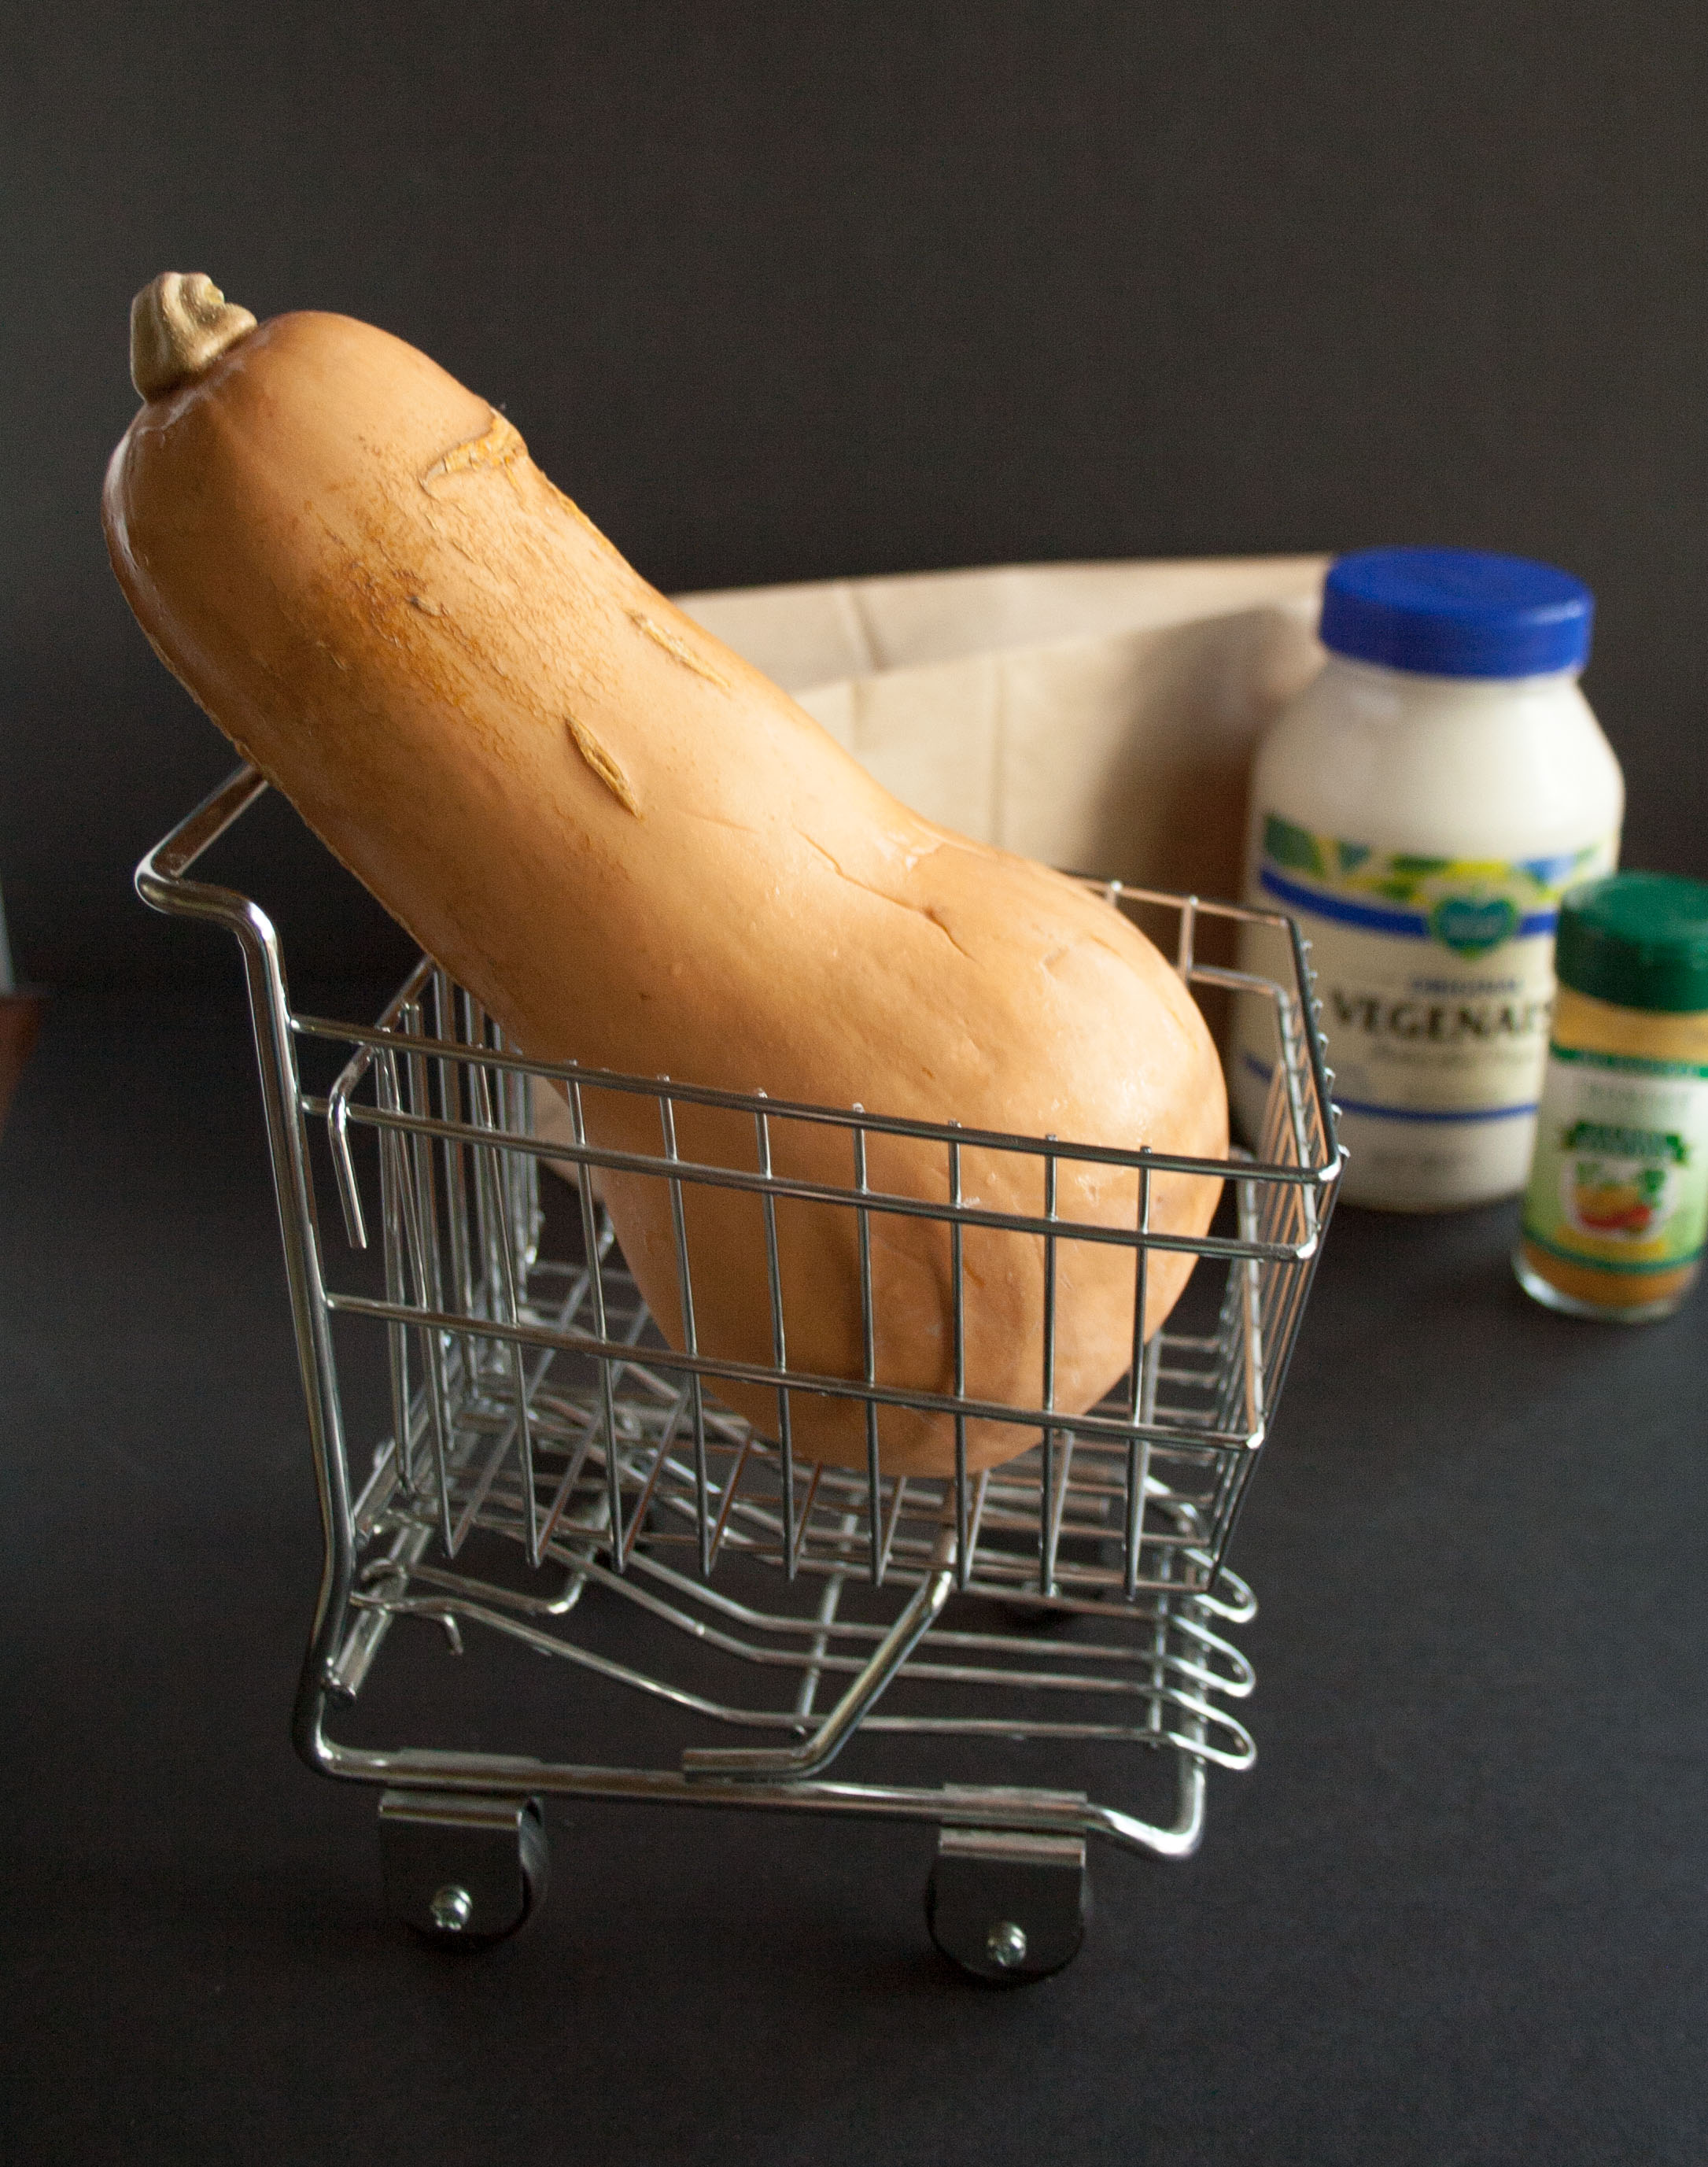 Butternut Squash Fries with Curry Mayo ingredients in background and squash in a mini shopping cart in foreground.